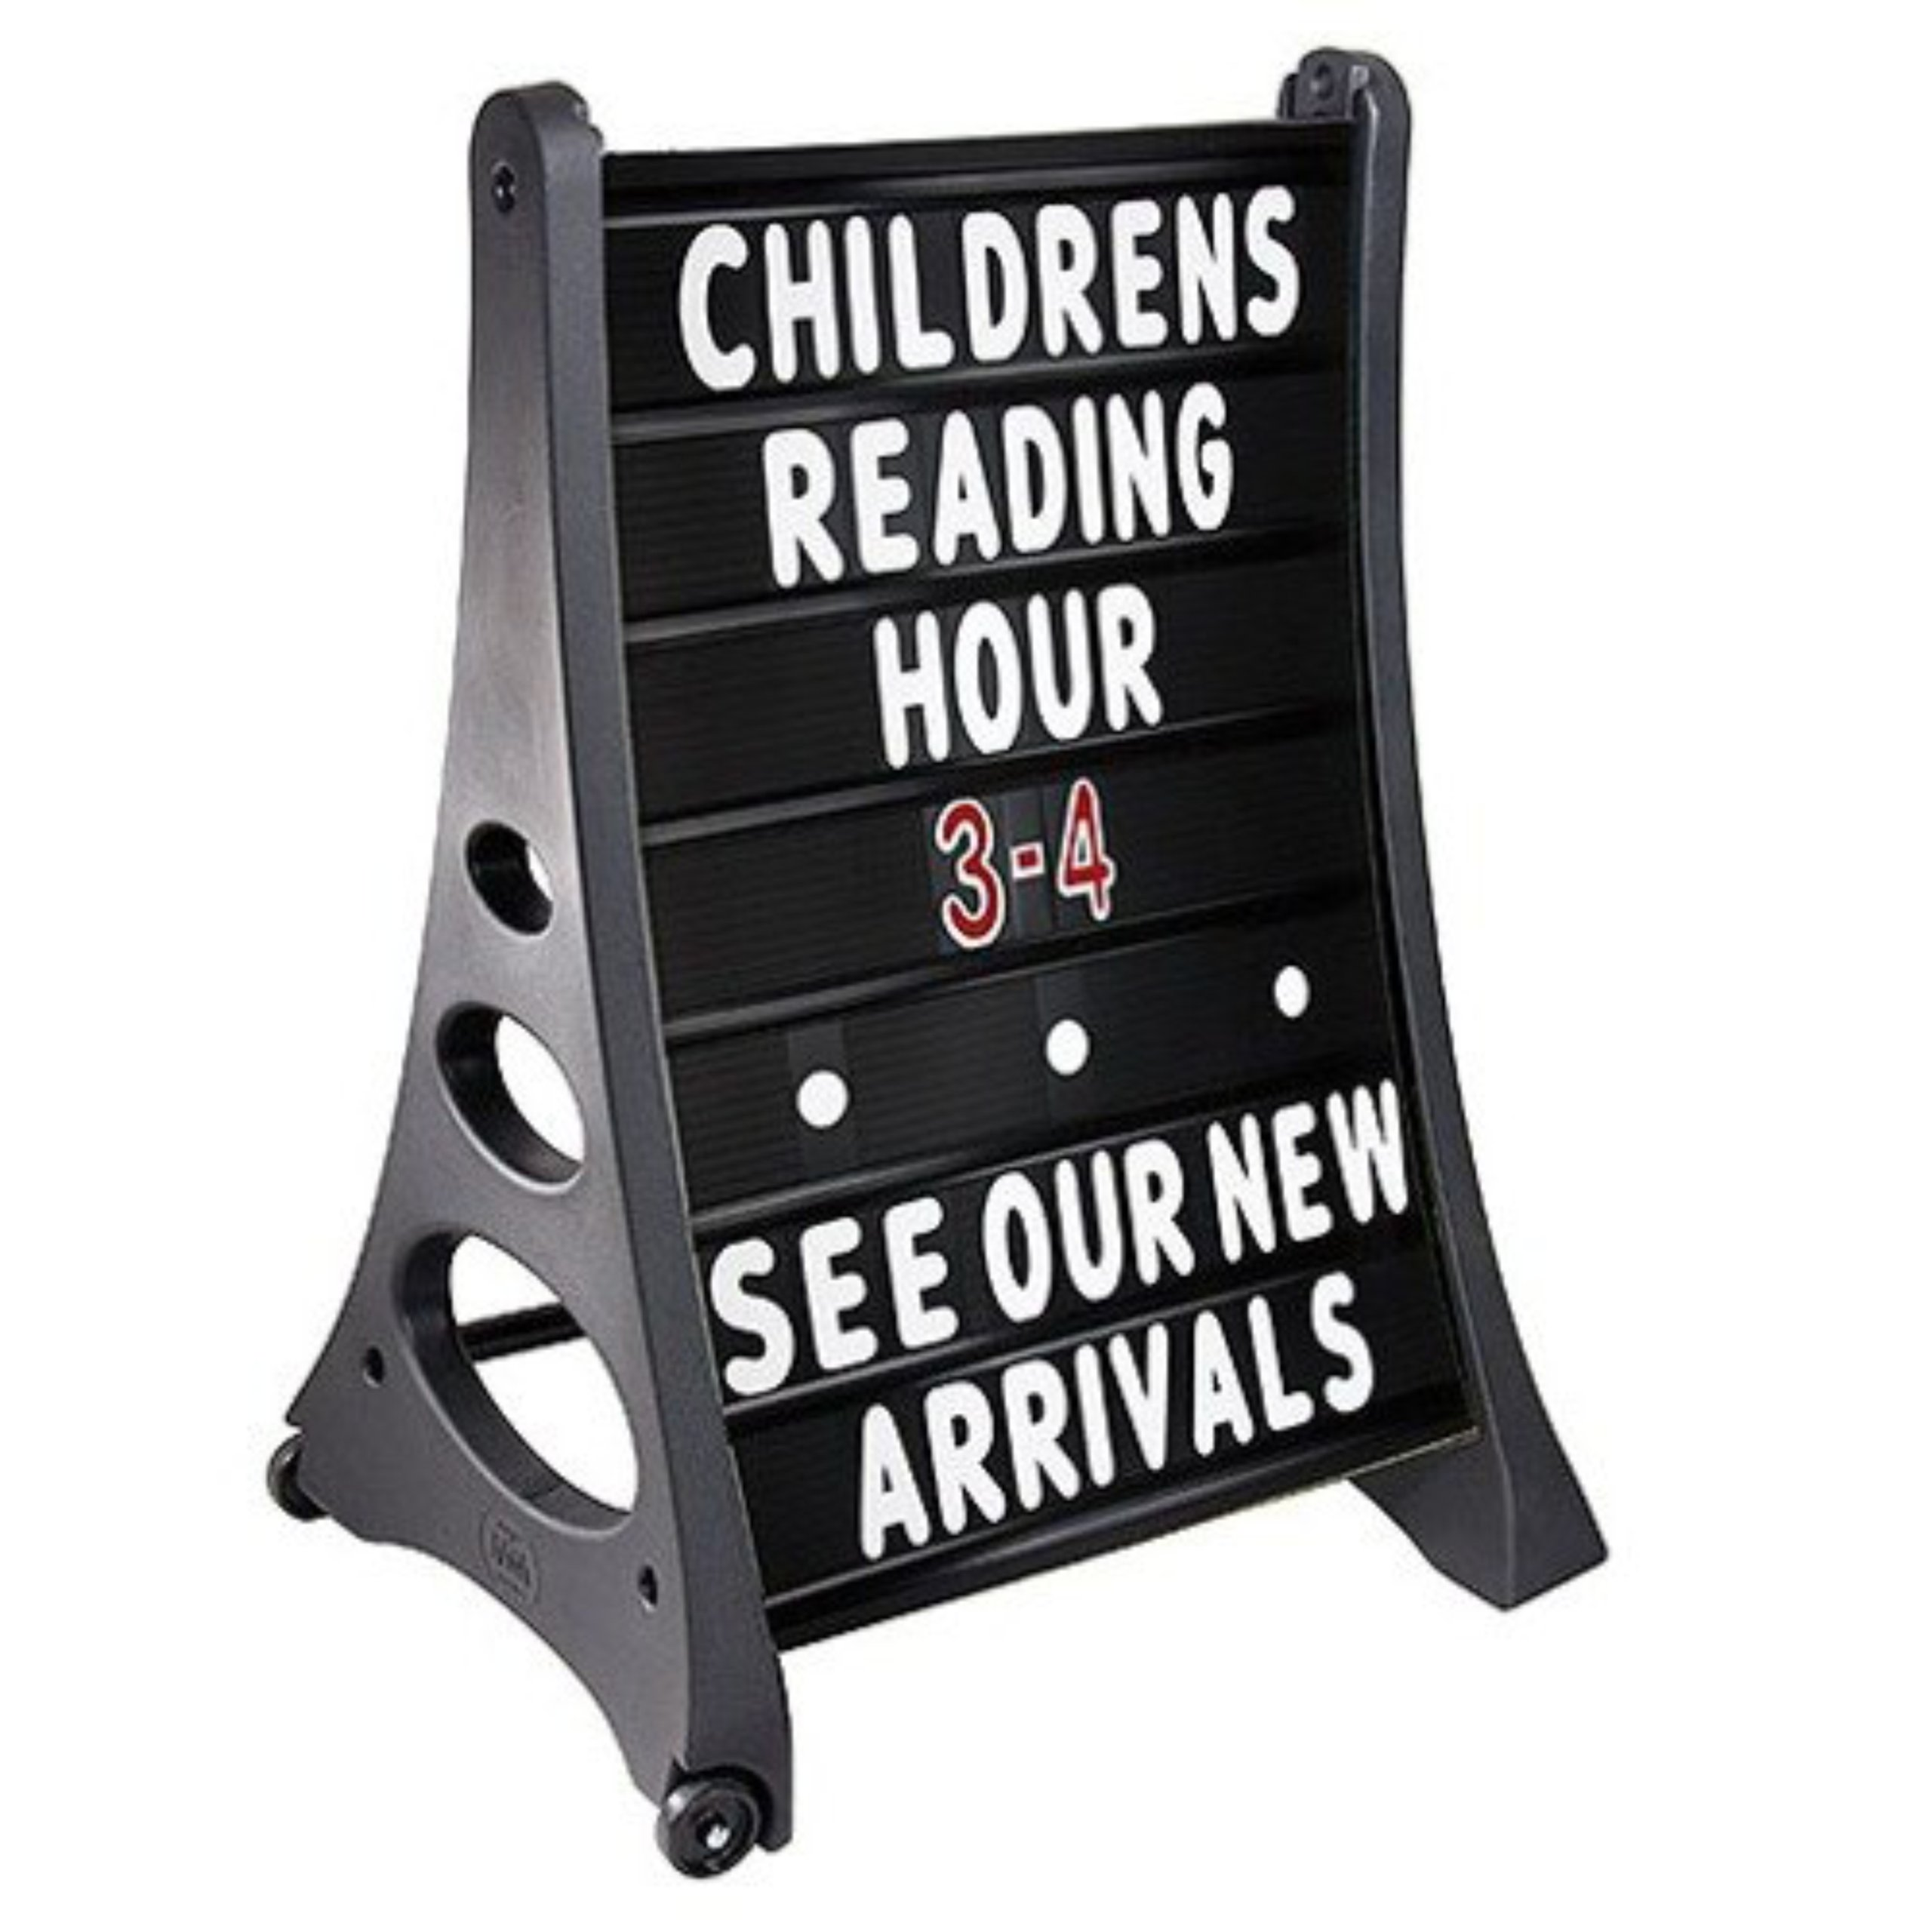 24'' x 36'' Rolling Sidewalk Curb Sign A Frame Sign with Quick-Load Changeable Message Board and Letters, Black